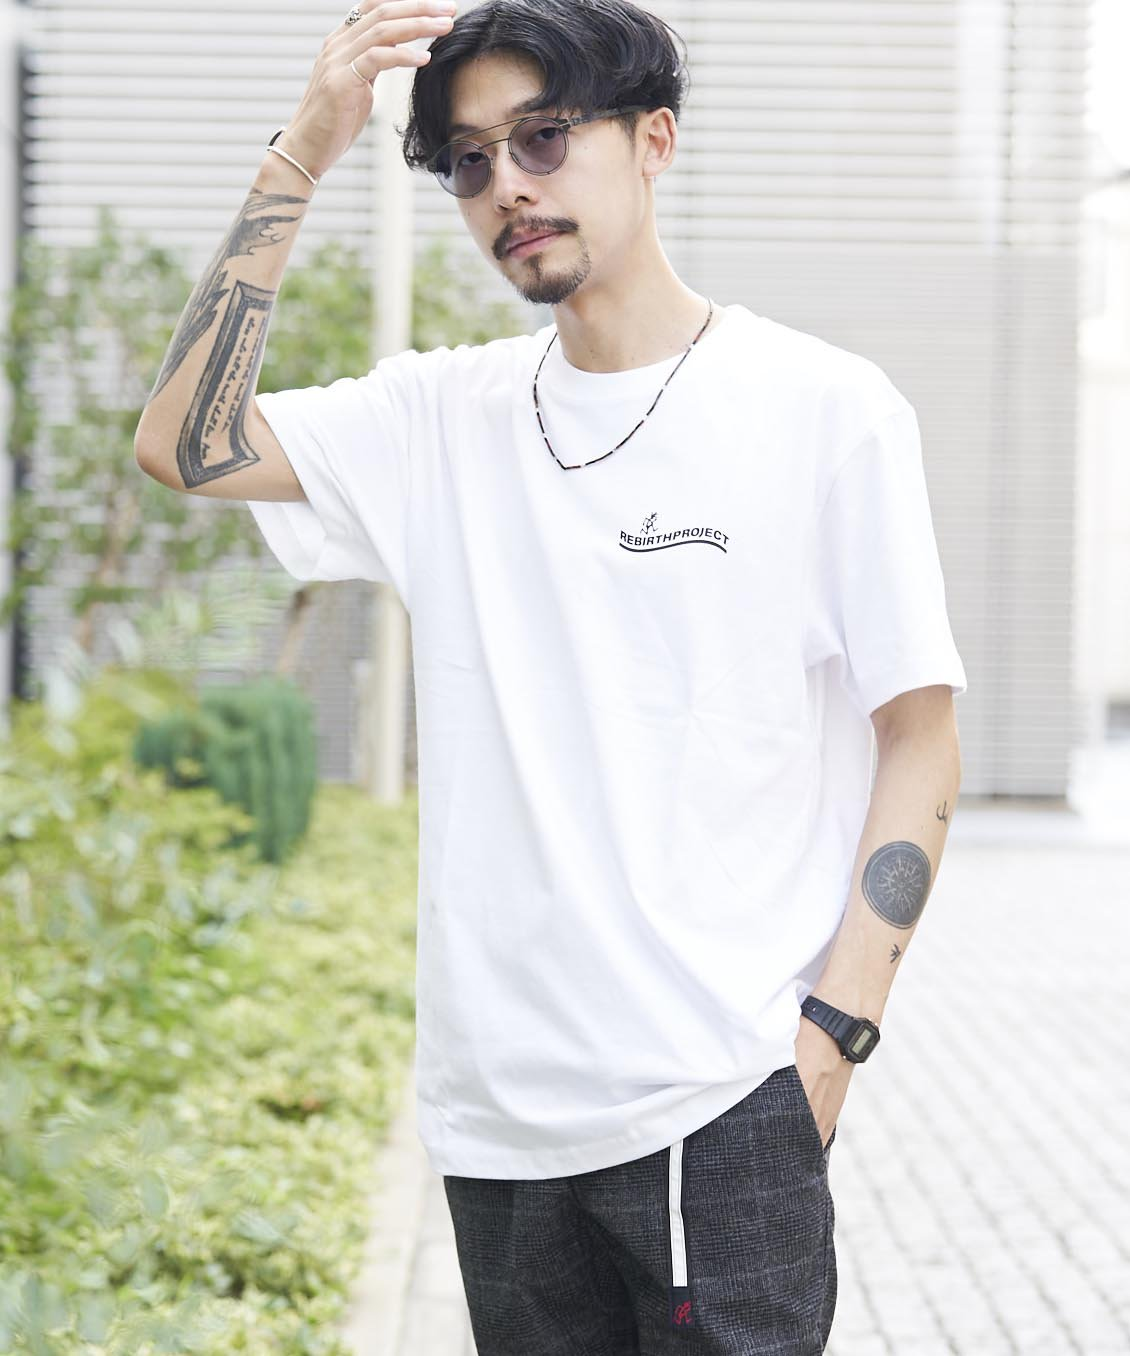 <img class='new_mark_img1' src='https://img.shop-pro.jp/img/new/icons15.gif' style='border:none;display:inline;margin:0px;padding:0px;width:auto;' />【REBIRTH PROJECT】Gramicci別注 W4B プリントTシャツ WHT(9月下旬お届け)